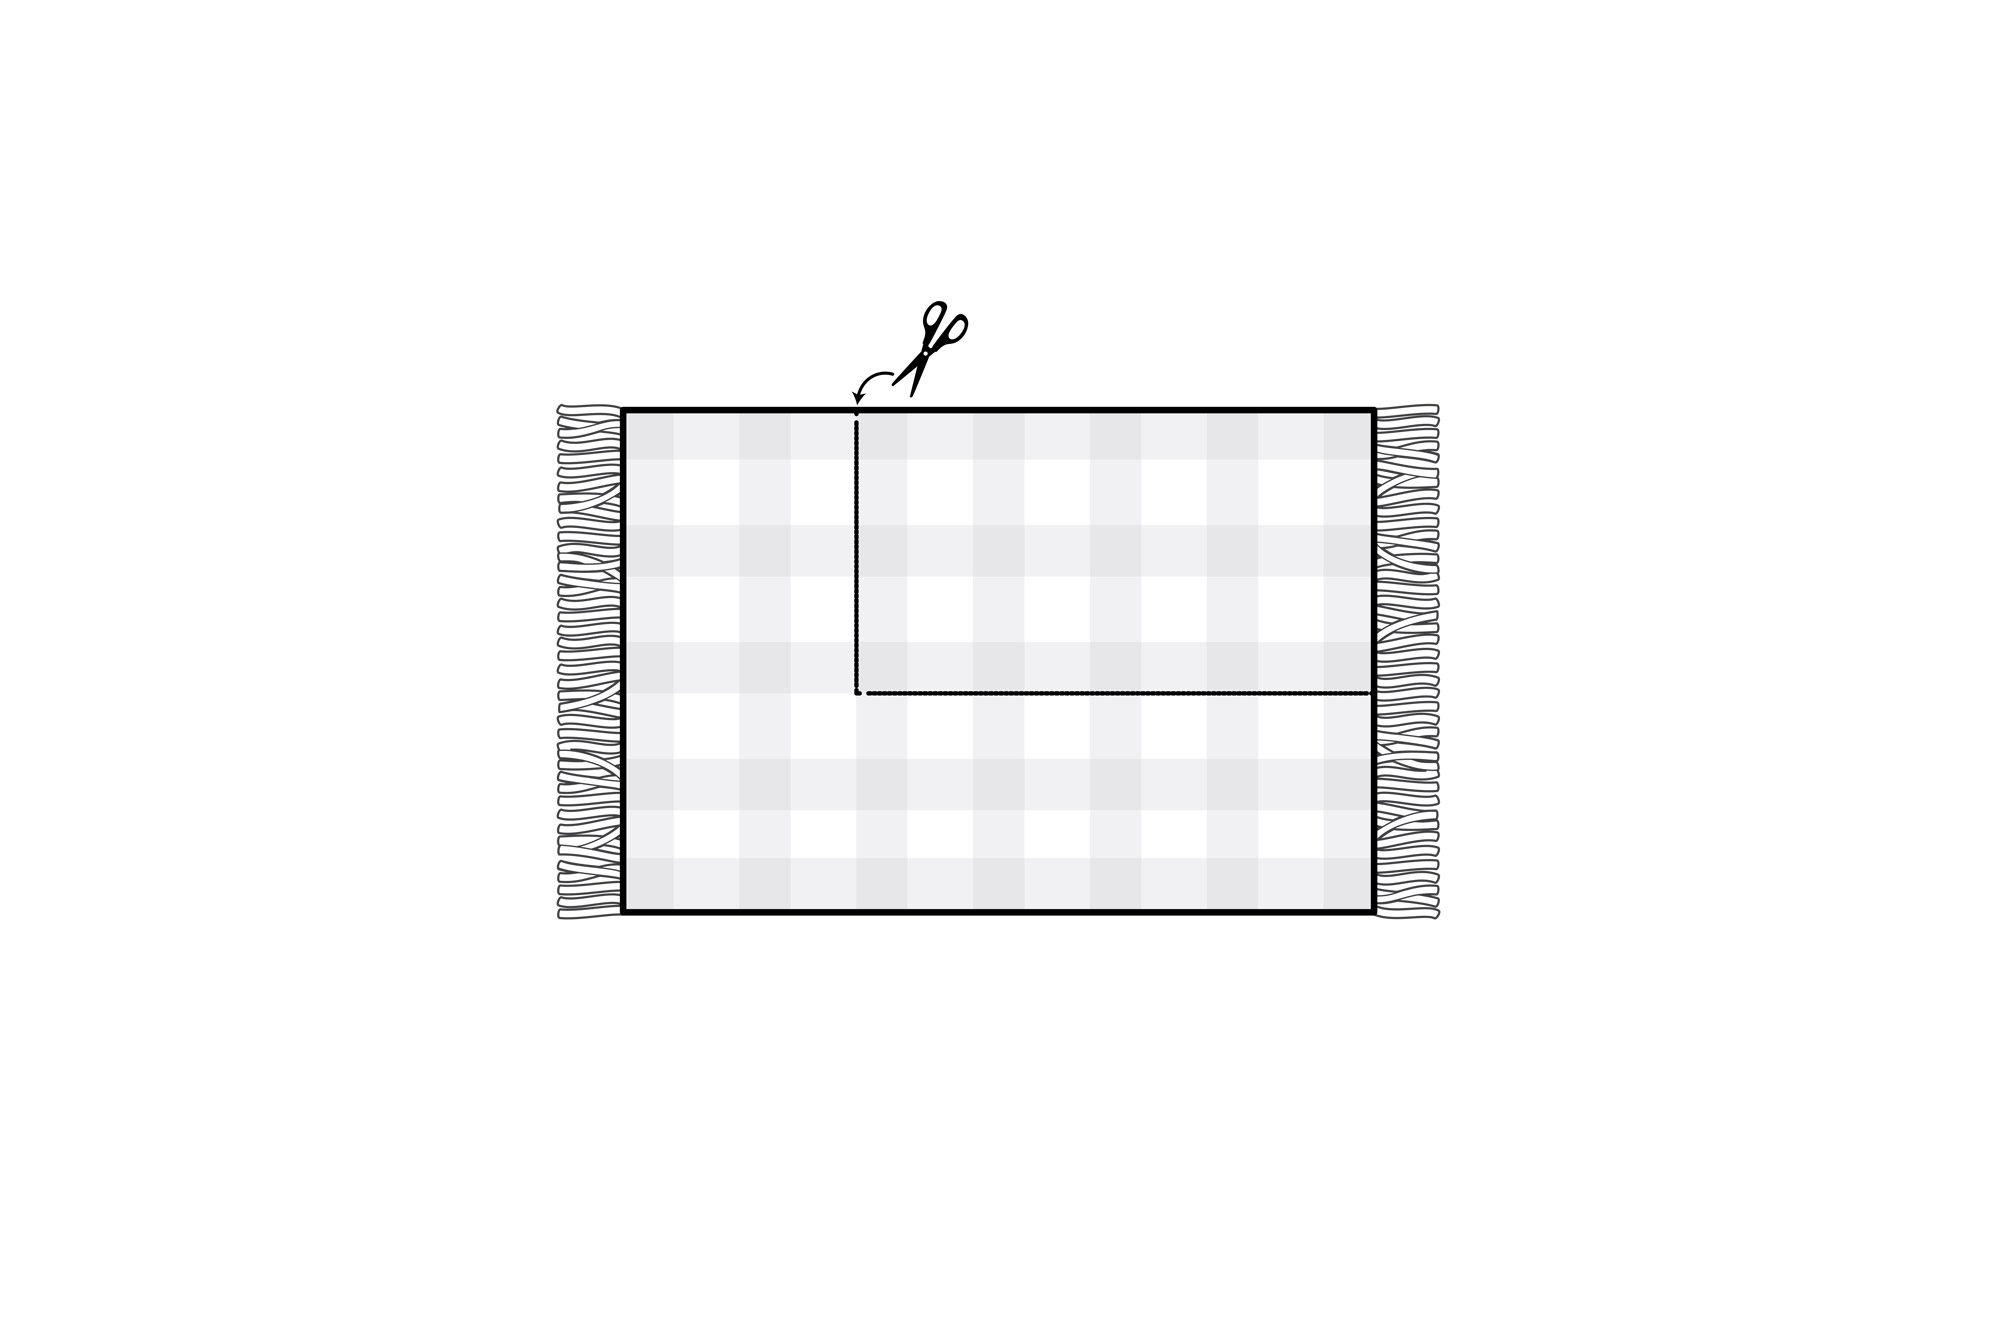 blanket flat with trim mark illustraton